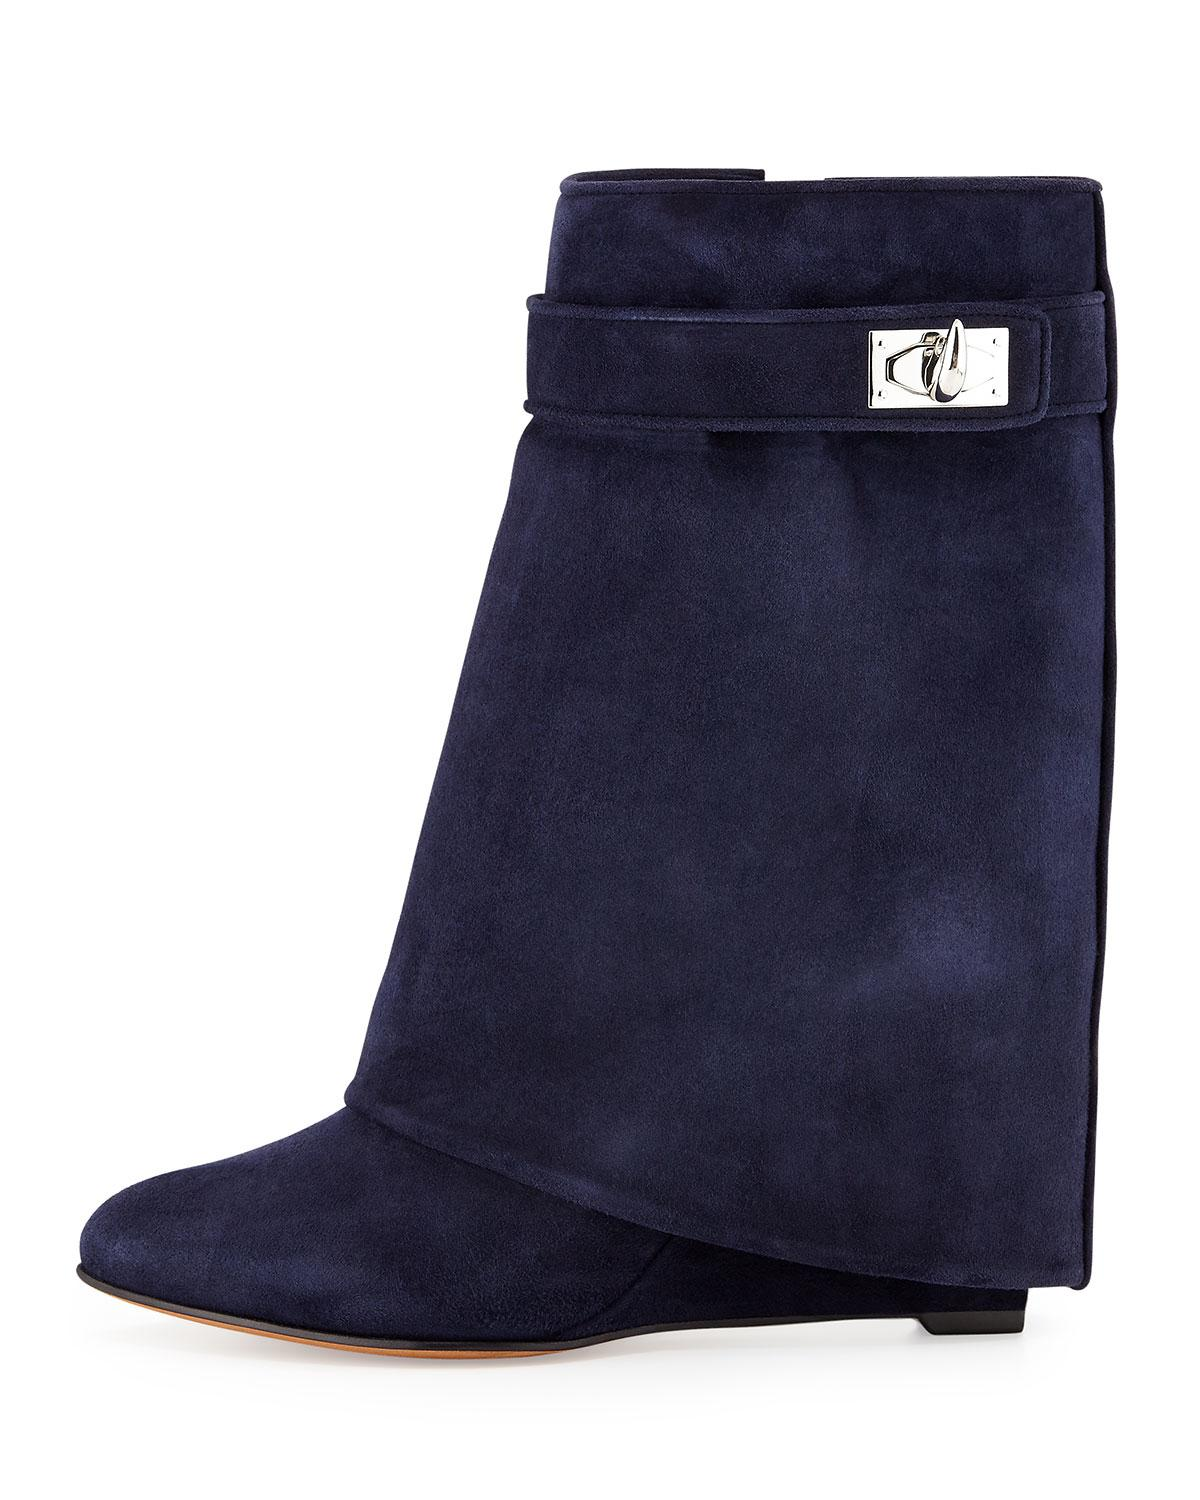 Givenchy Suede Platform Booties fake online discount finishline xoq9yXDiXL